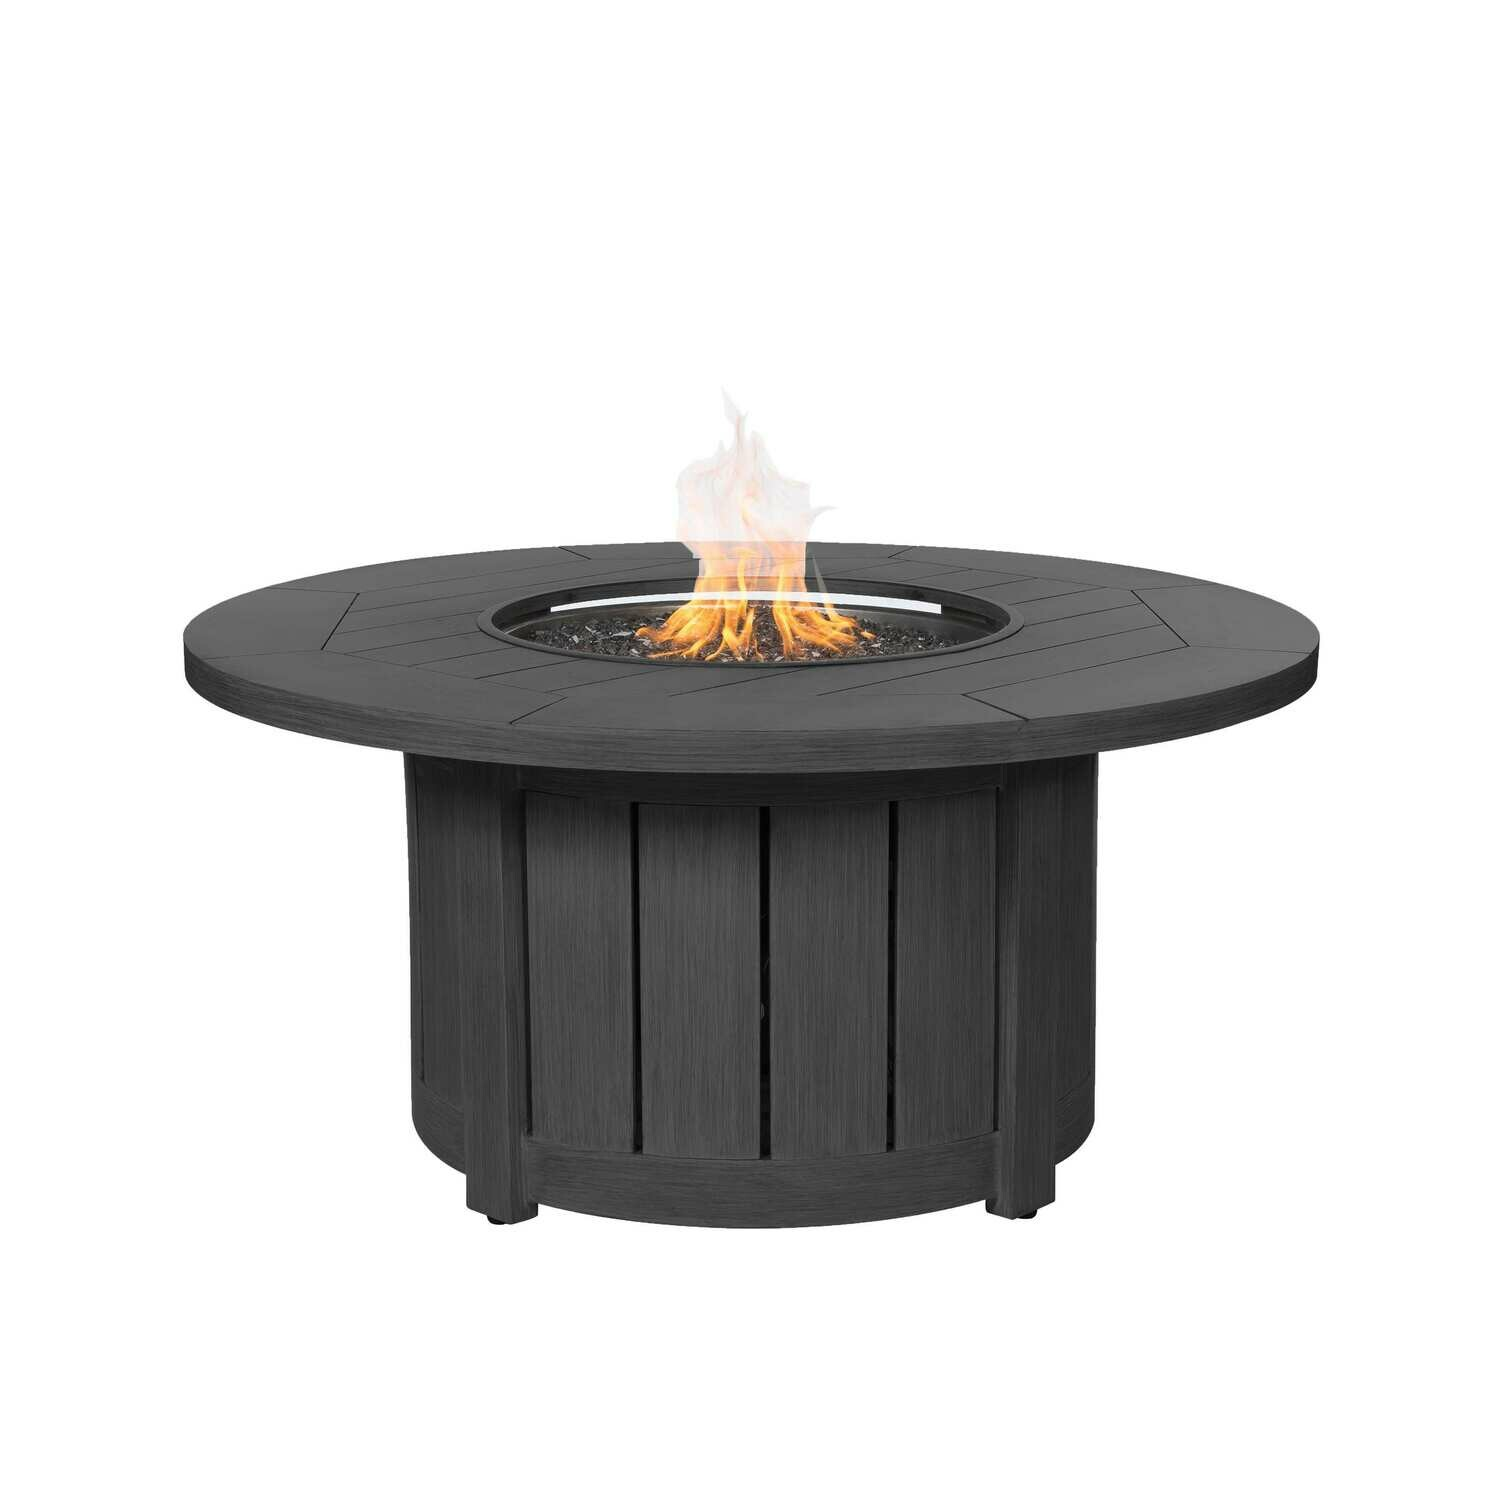 "Aluminum 50"" Round Fire Pit Table - Smoke"